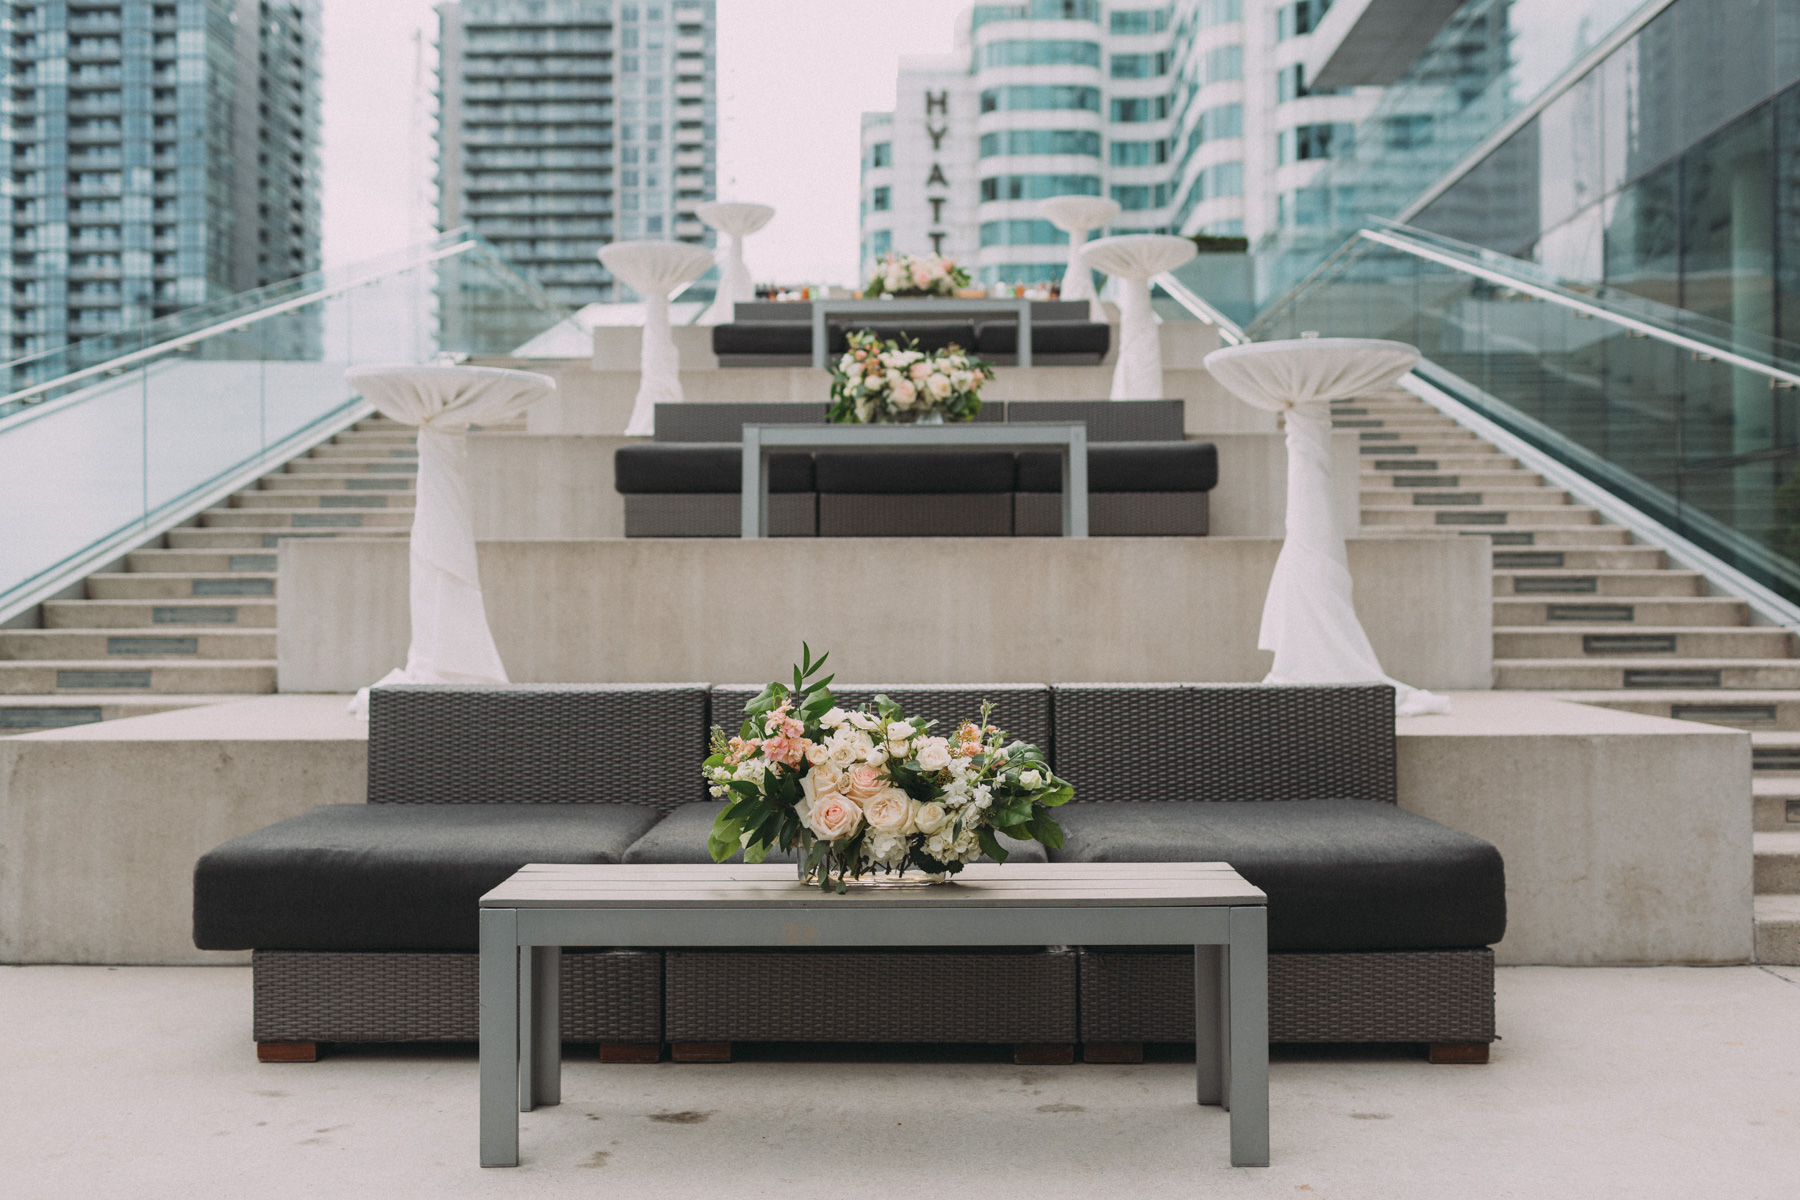 Malaparte-wedding-photography-Toronto-by-Sam-Wong-of-Artanis-Collective-Mary-Anne-Bourne_031.jpg